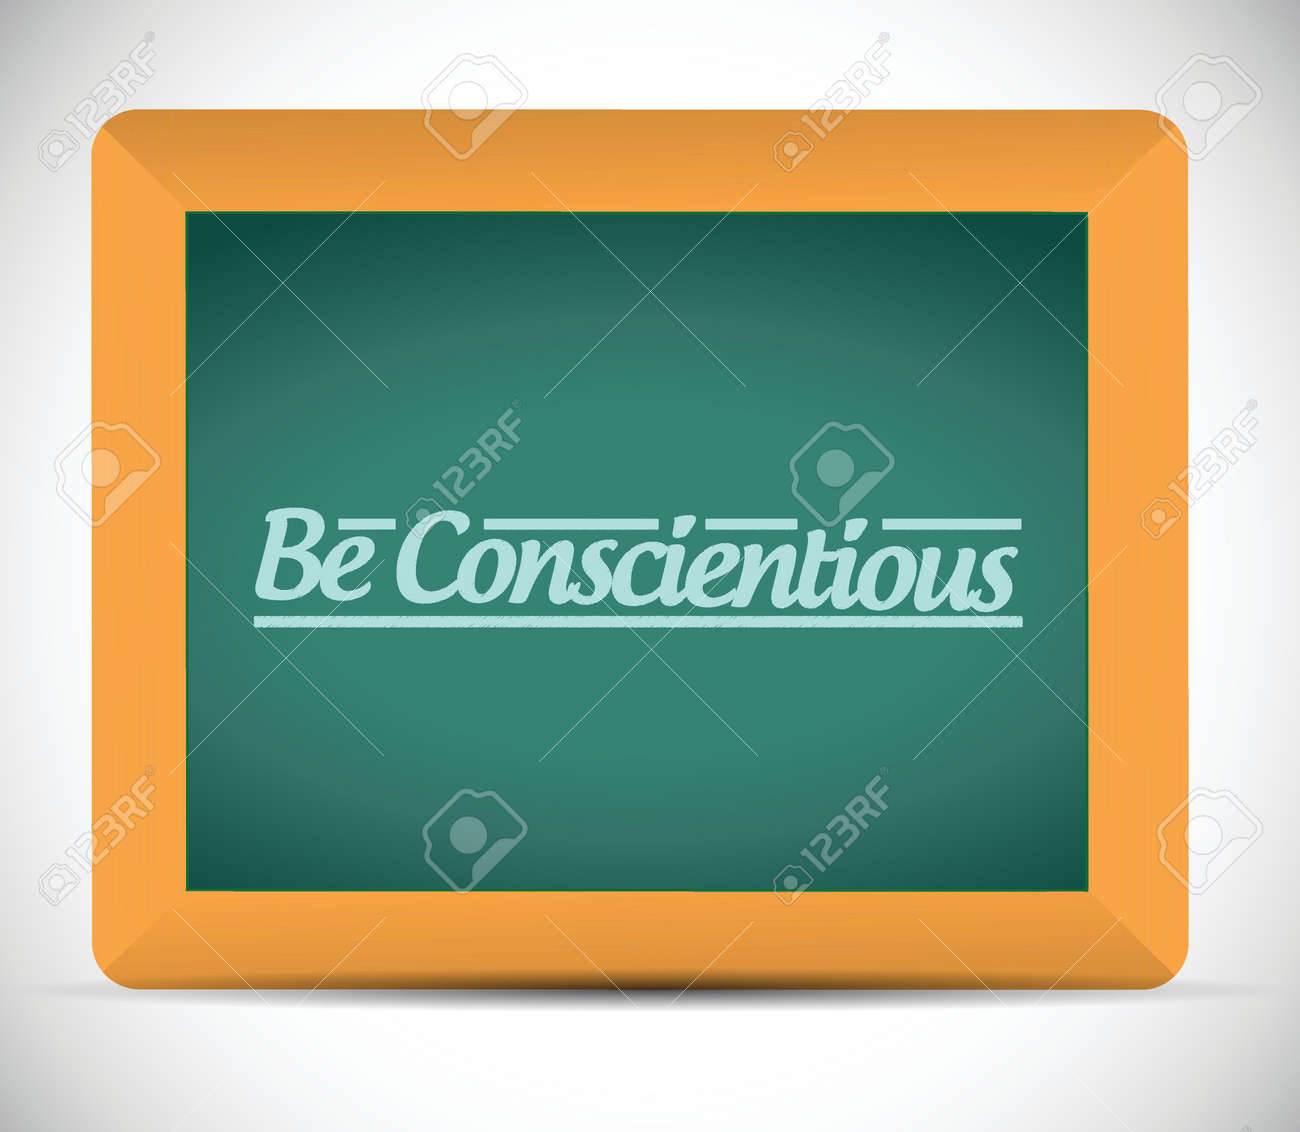 be conscientious illustration design over a white background Stock Vector - 24999172